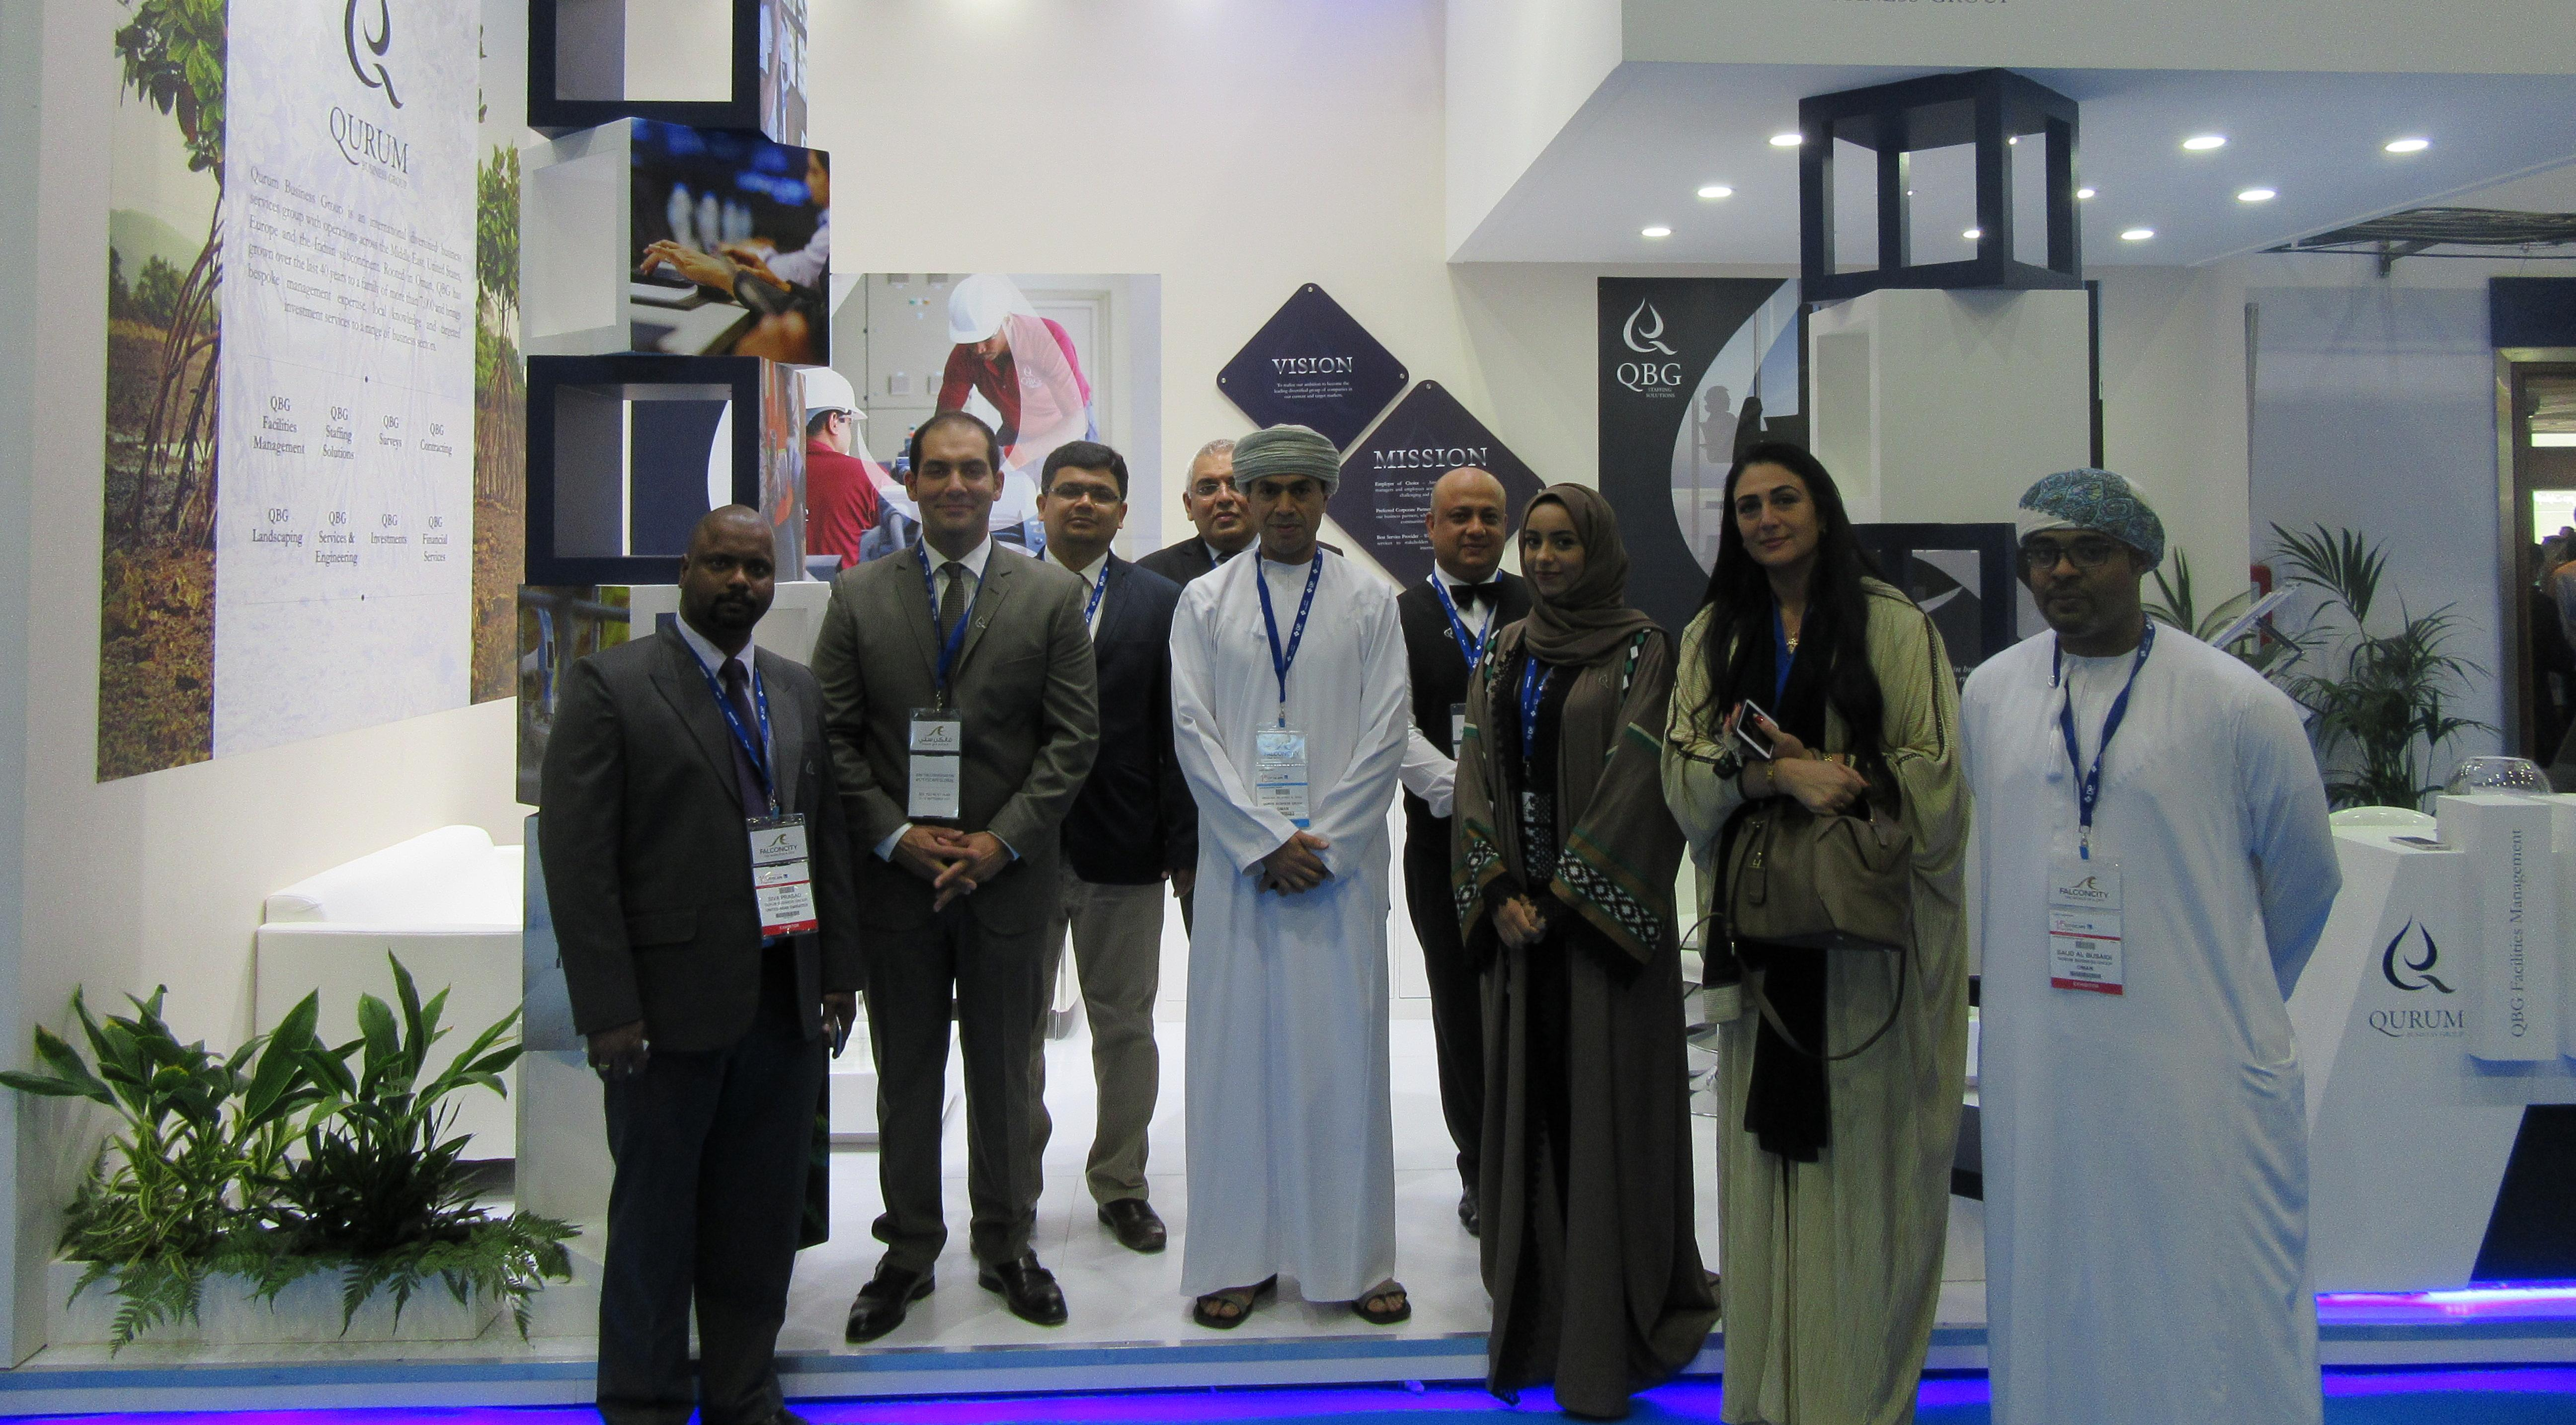 QBG Highlight Growing Role of Business Management Solution At Cityscape Global